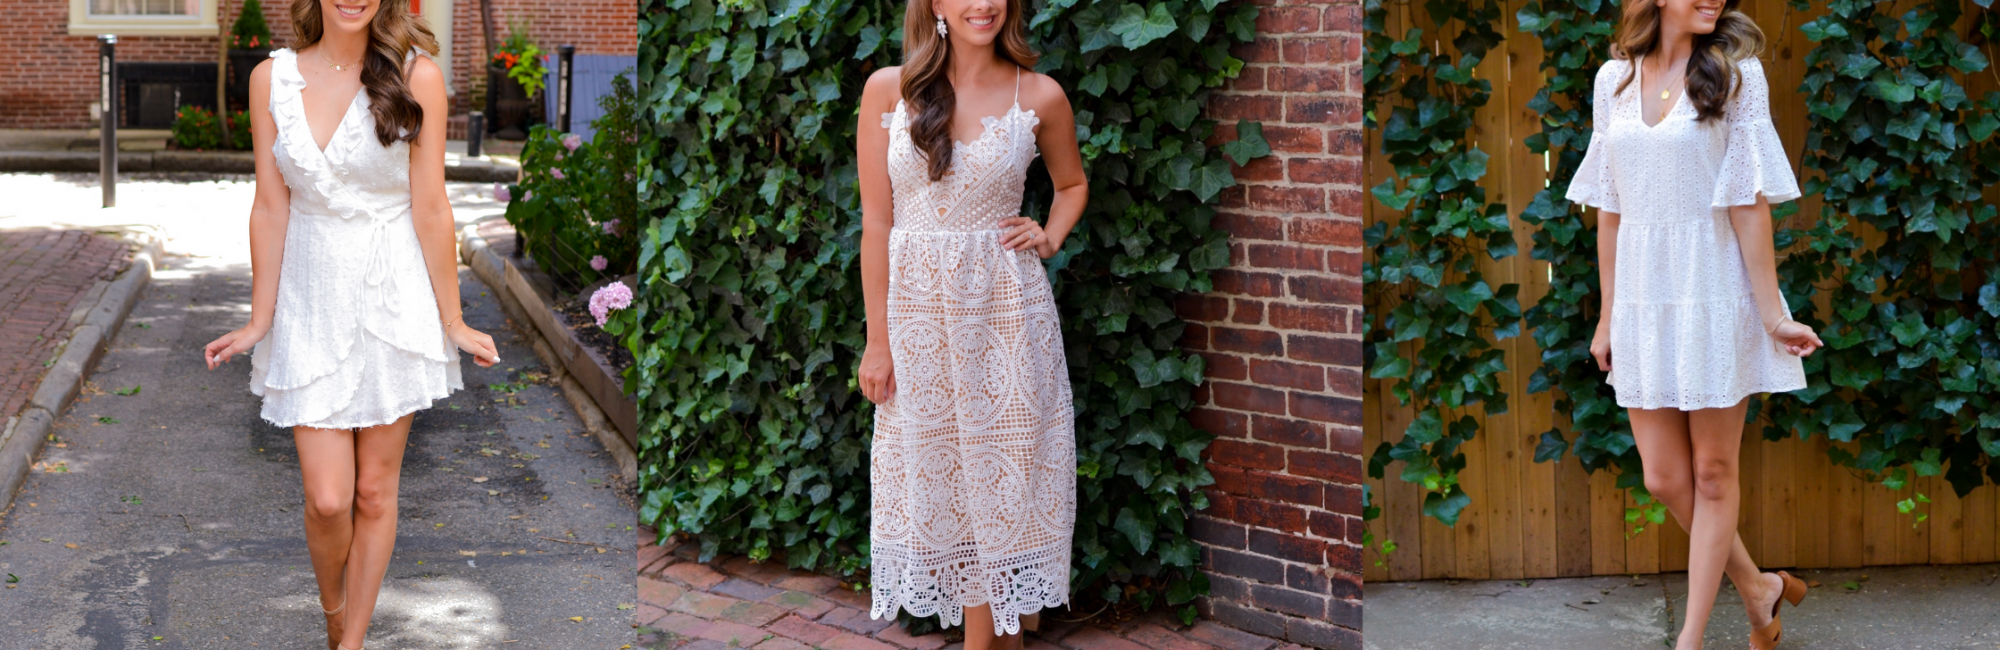 White Dresses: My Current New Fashion Obsession